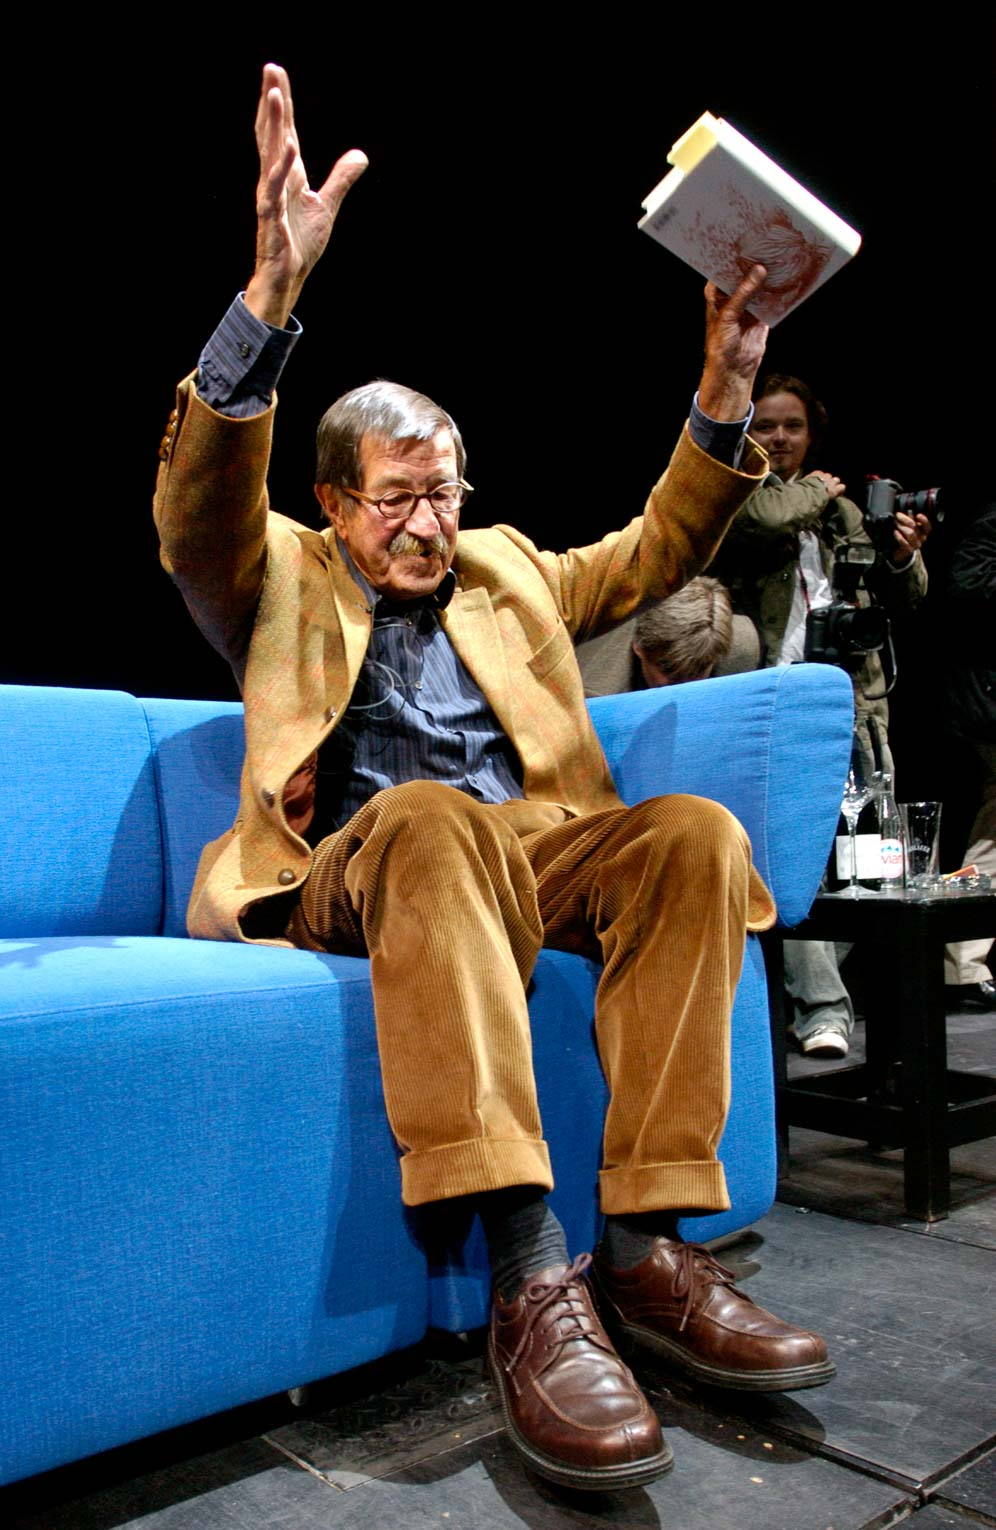 Günter Grass, Germany, recipient of the 1999 Nobel Prize in Literature (Berlin, 2006). Photo © Aris Fotografie